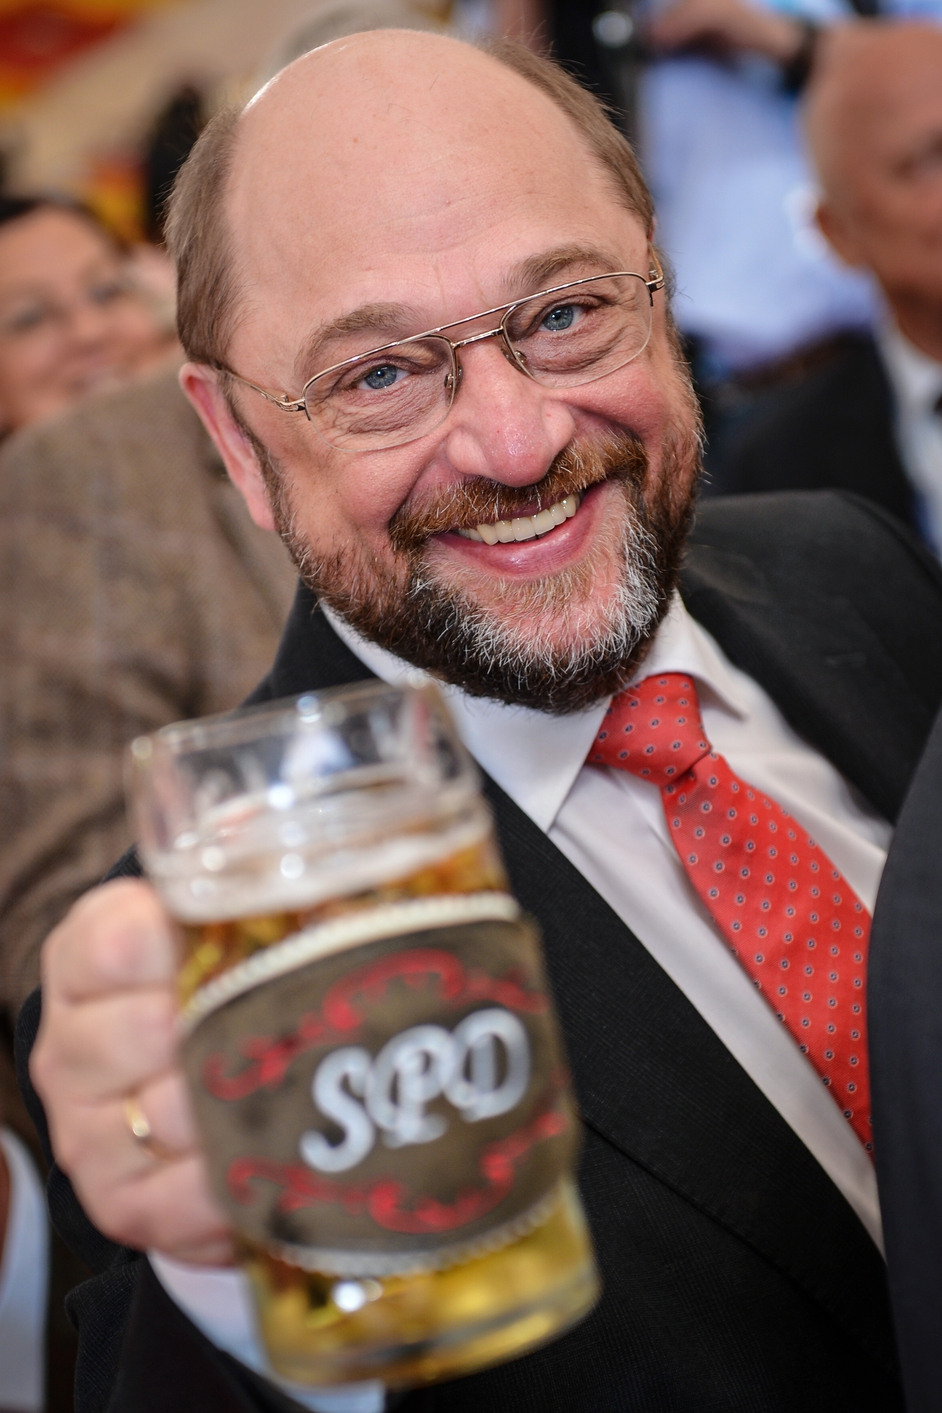 EU Parliament President Martin Schulz drinks beer during the SPD Political Ash Wednesday rally in Vilshofen, Germany (Pic: EPA)